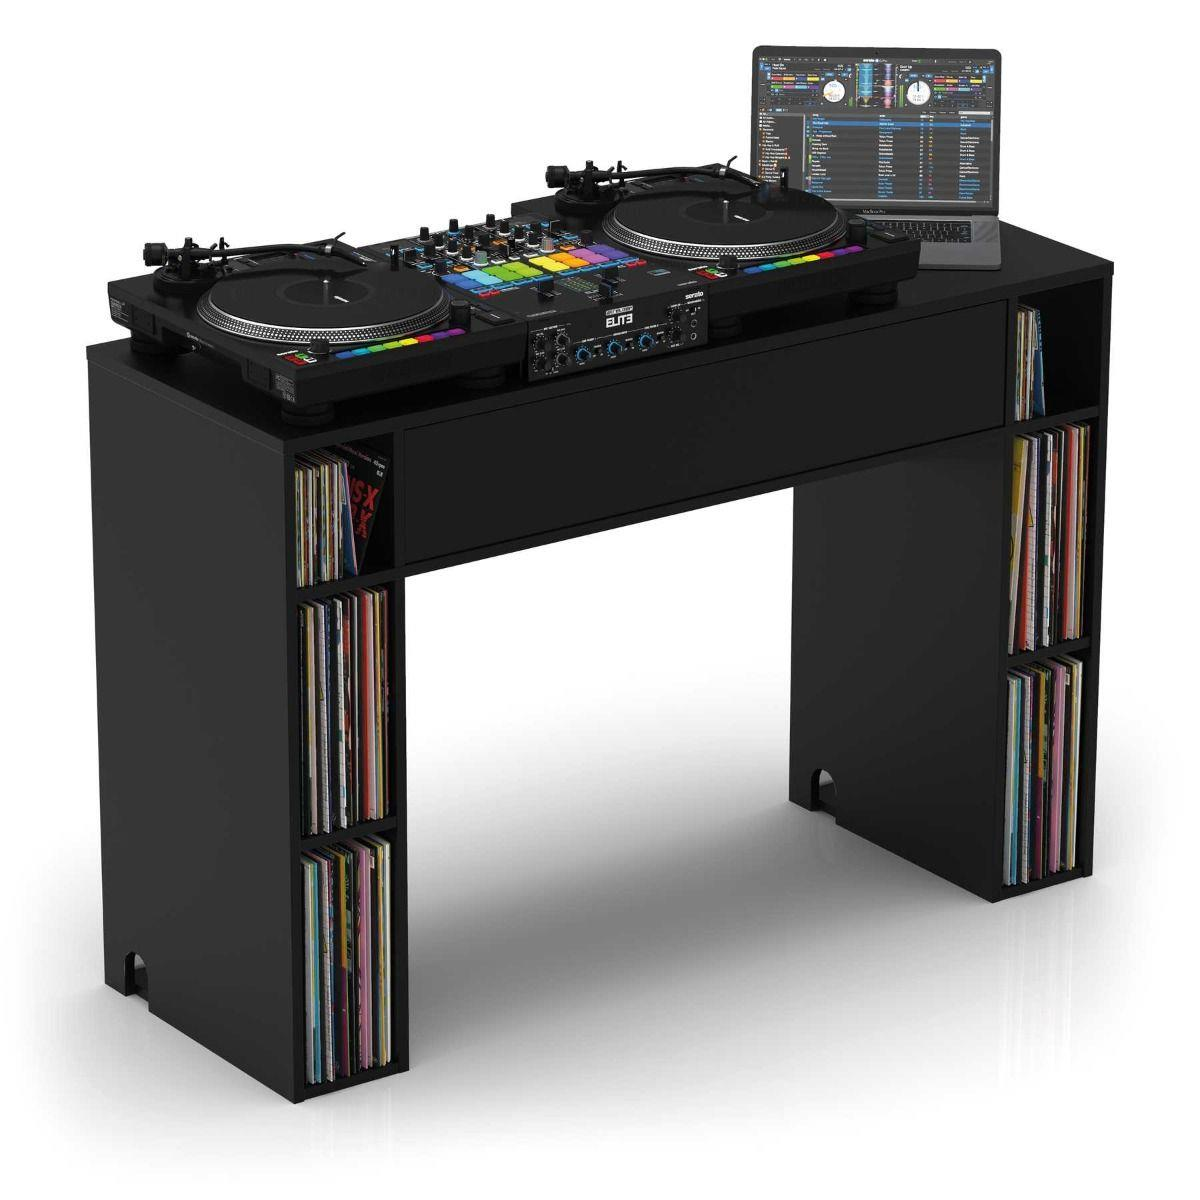 113776  4043034167857 Glorious Modular Mix Station - Sort Premium DJ-benk